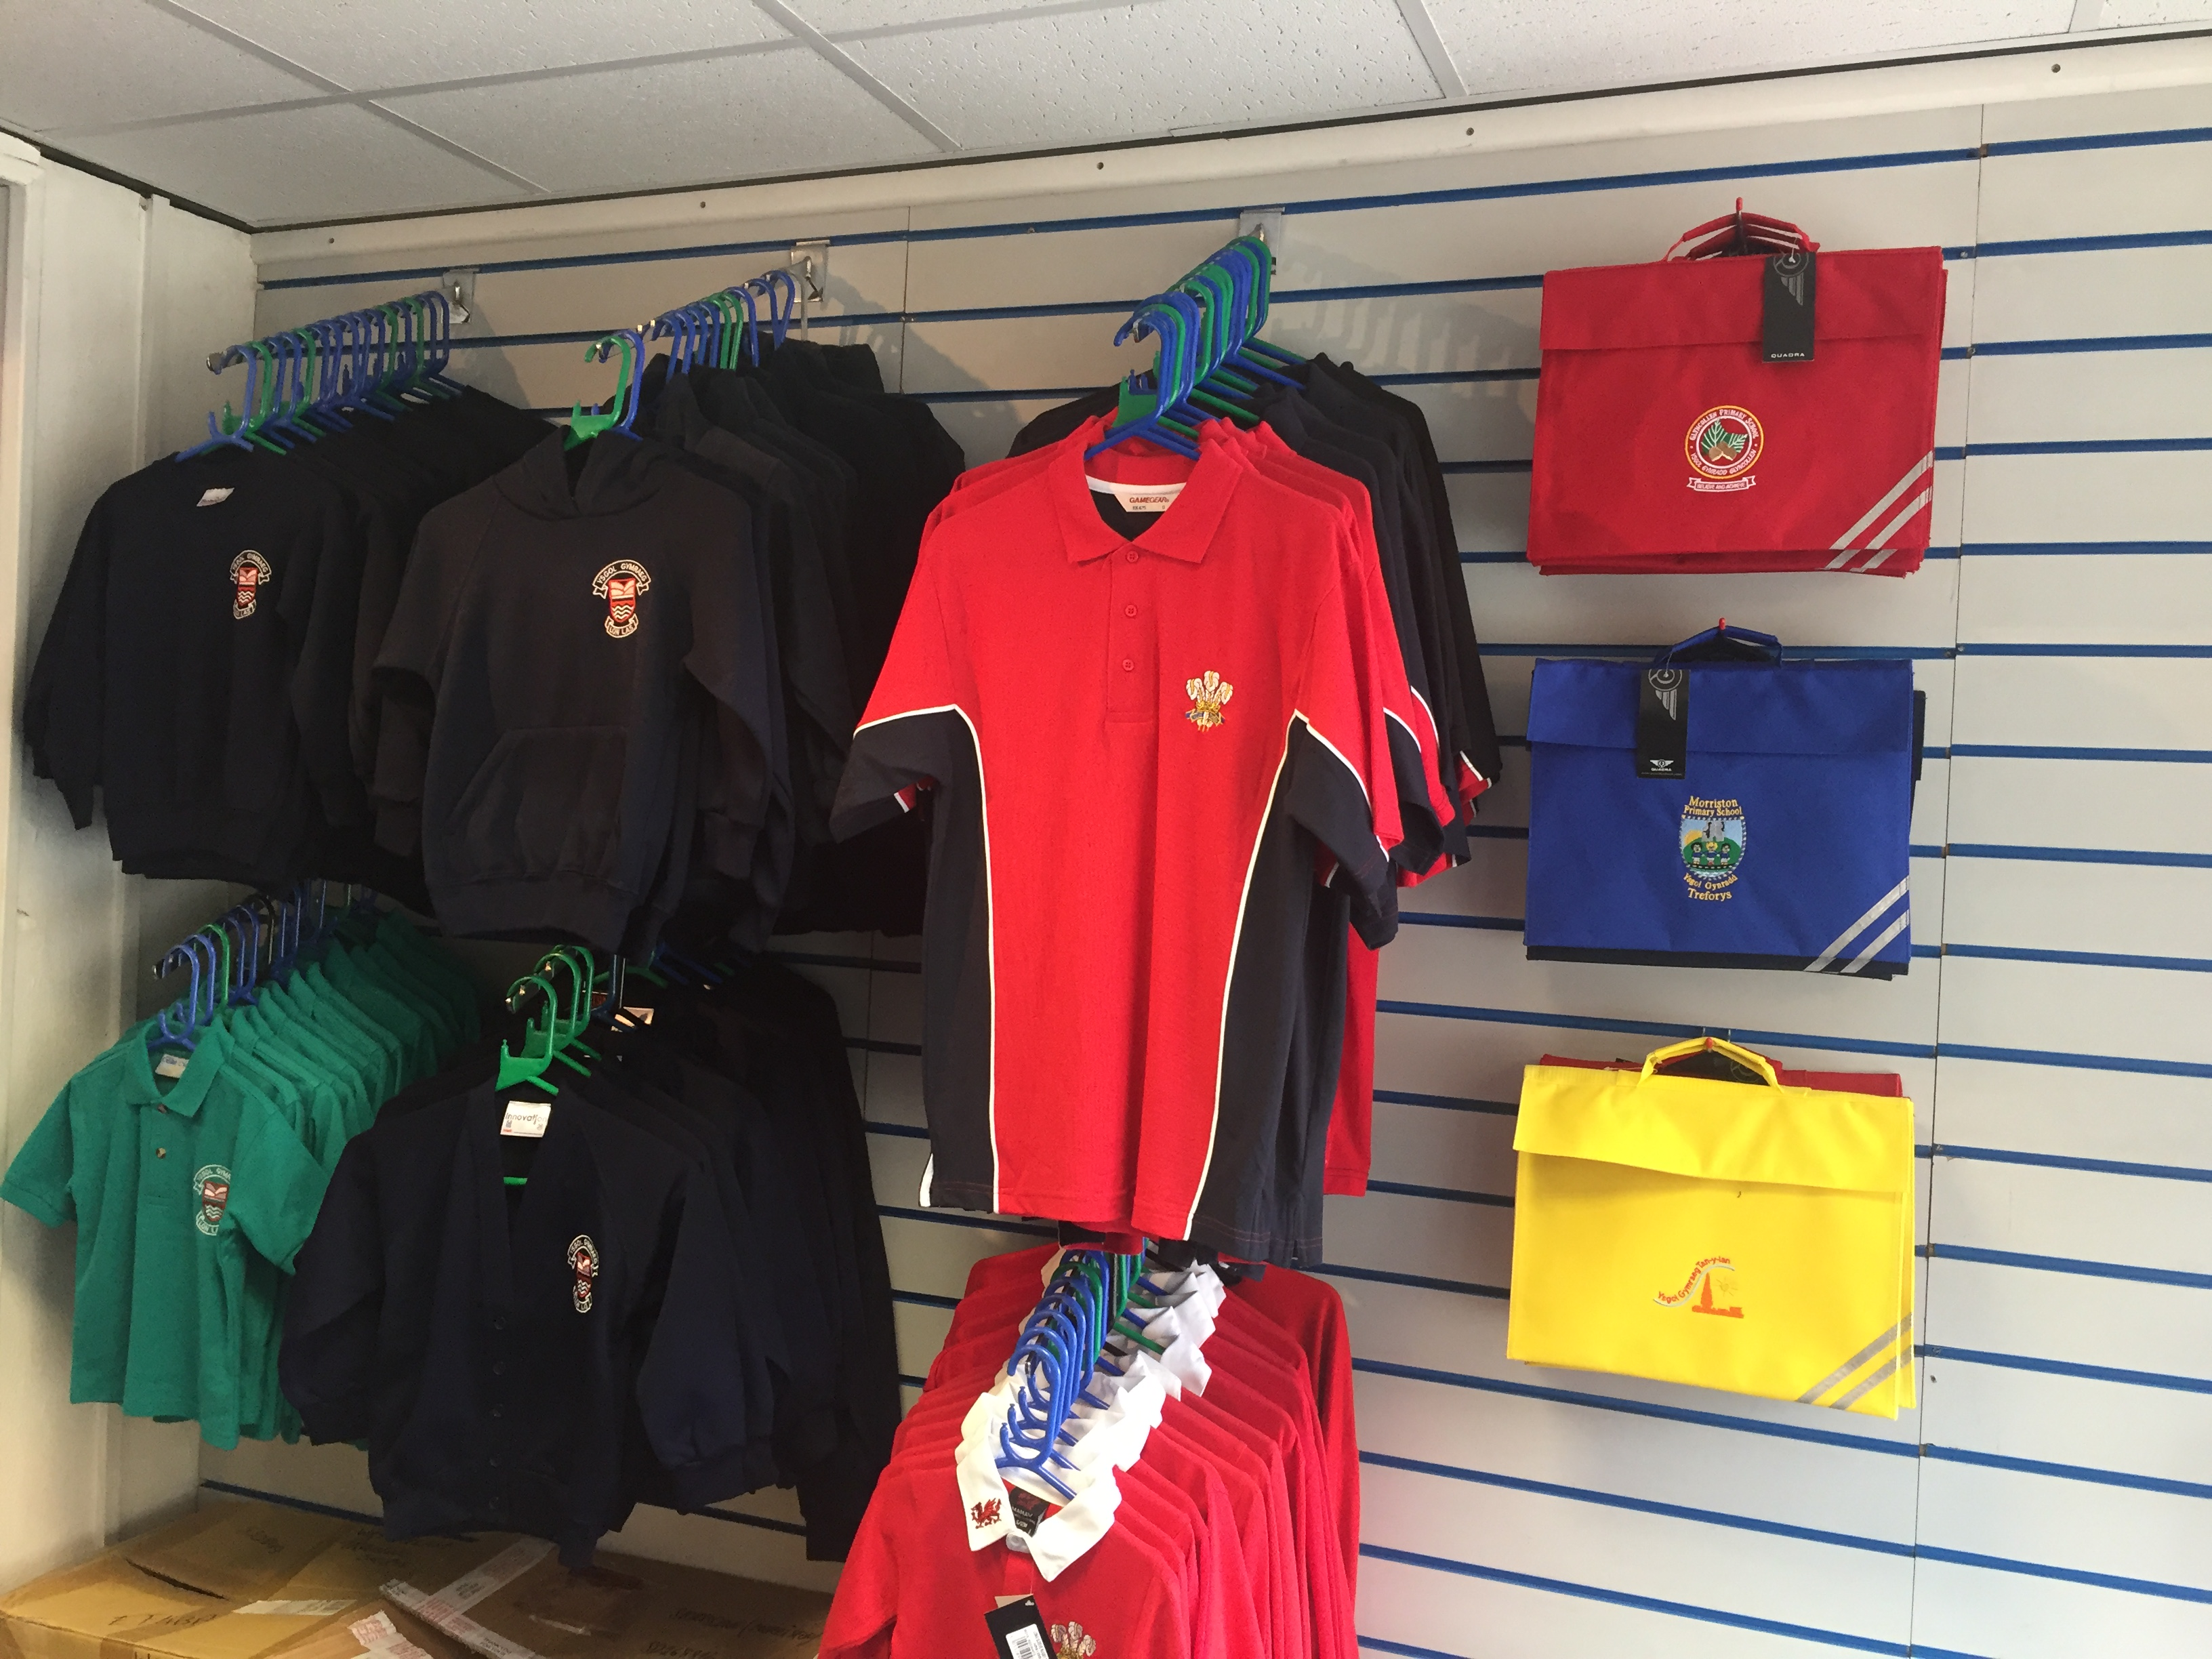 Sportscene, school wear supplier, Morriston, Swansea